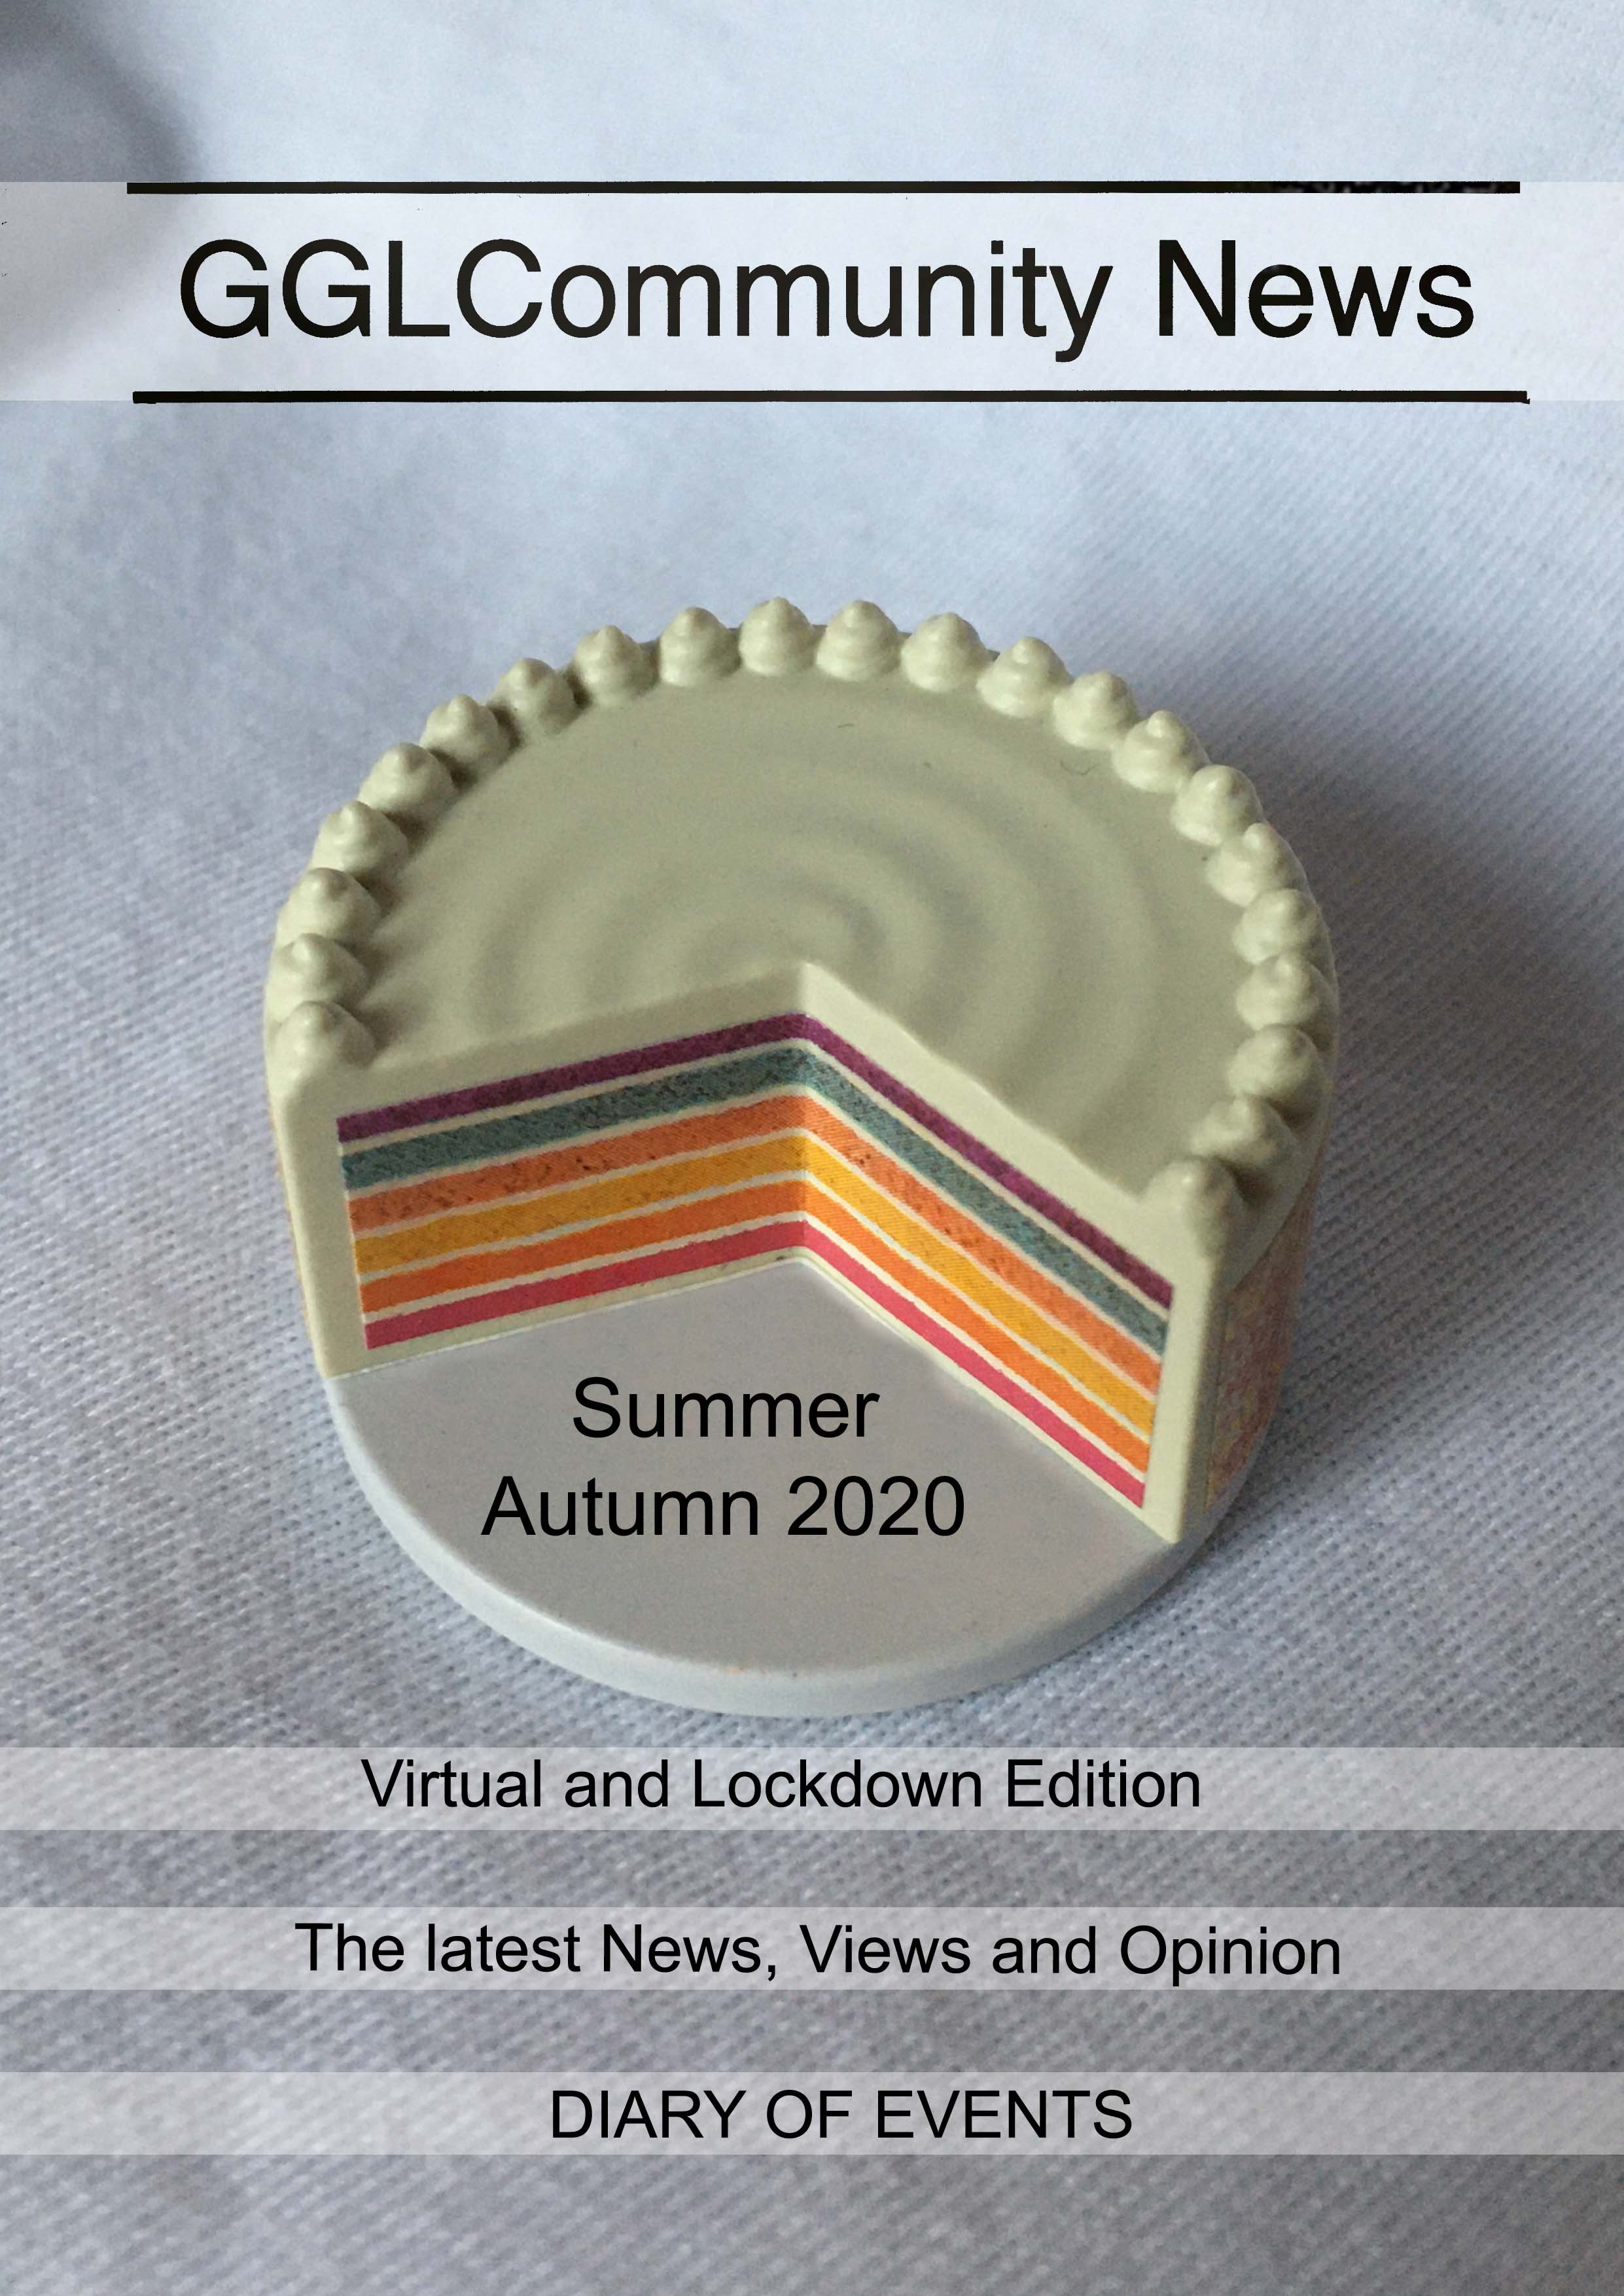 Summer Autumn 2020